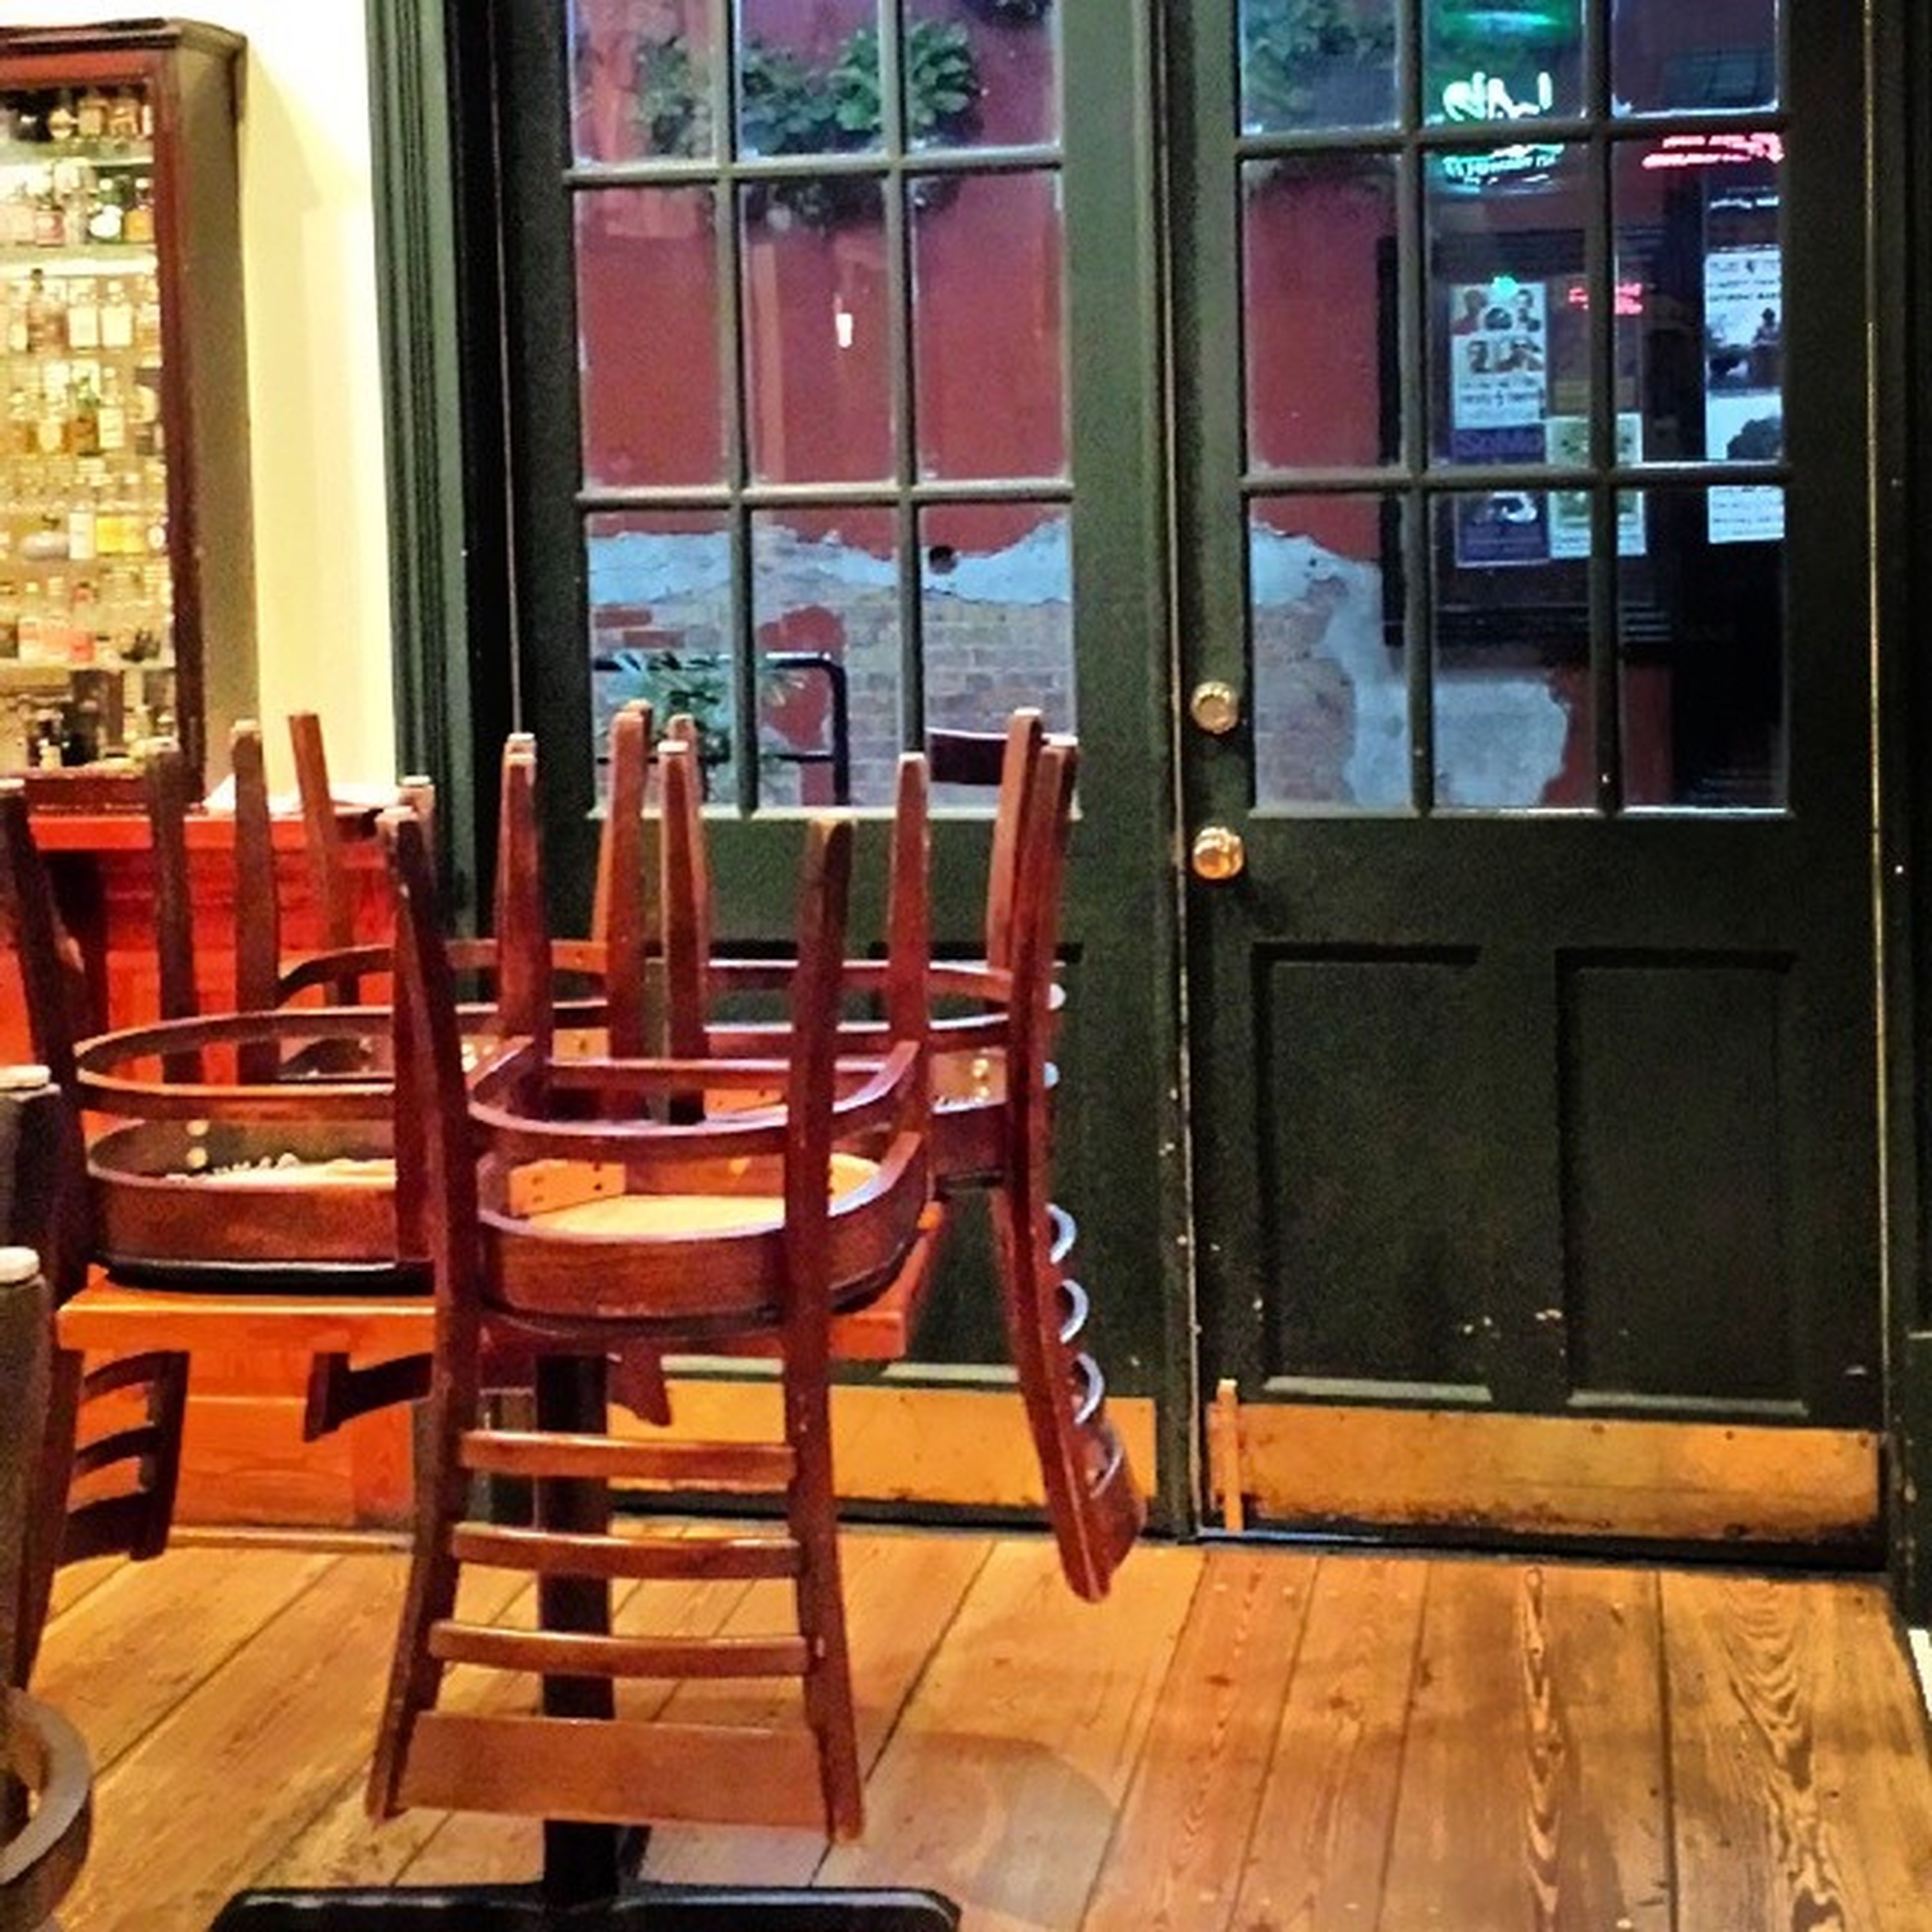 indoors, chair, table, wood - material, absence, home interior, window, furniture, empty, house, architecture, built structure, seat, hardwood floor, flooring, door, no people, restaurant, day, curtain